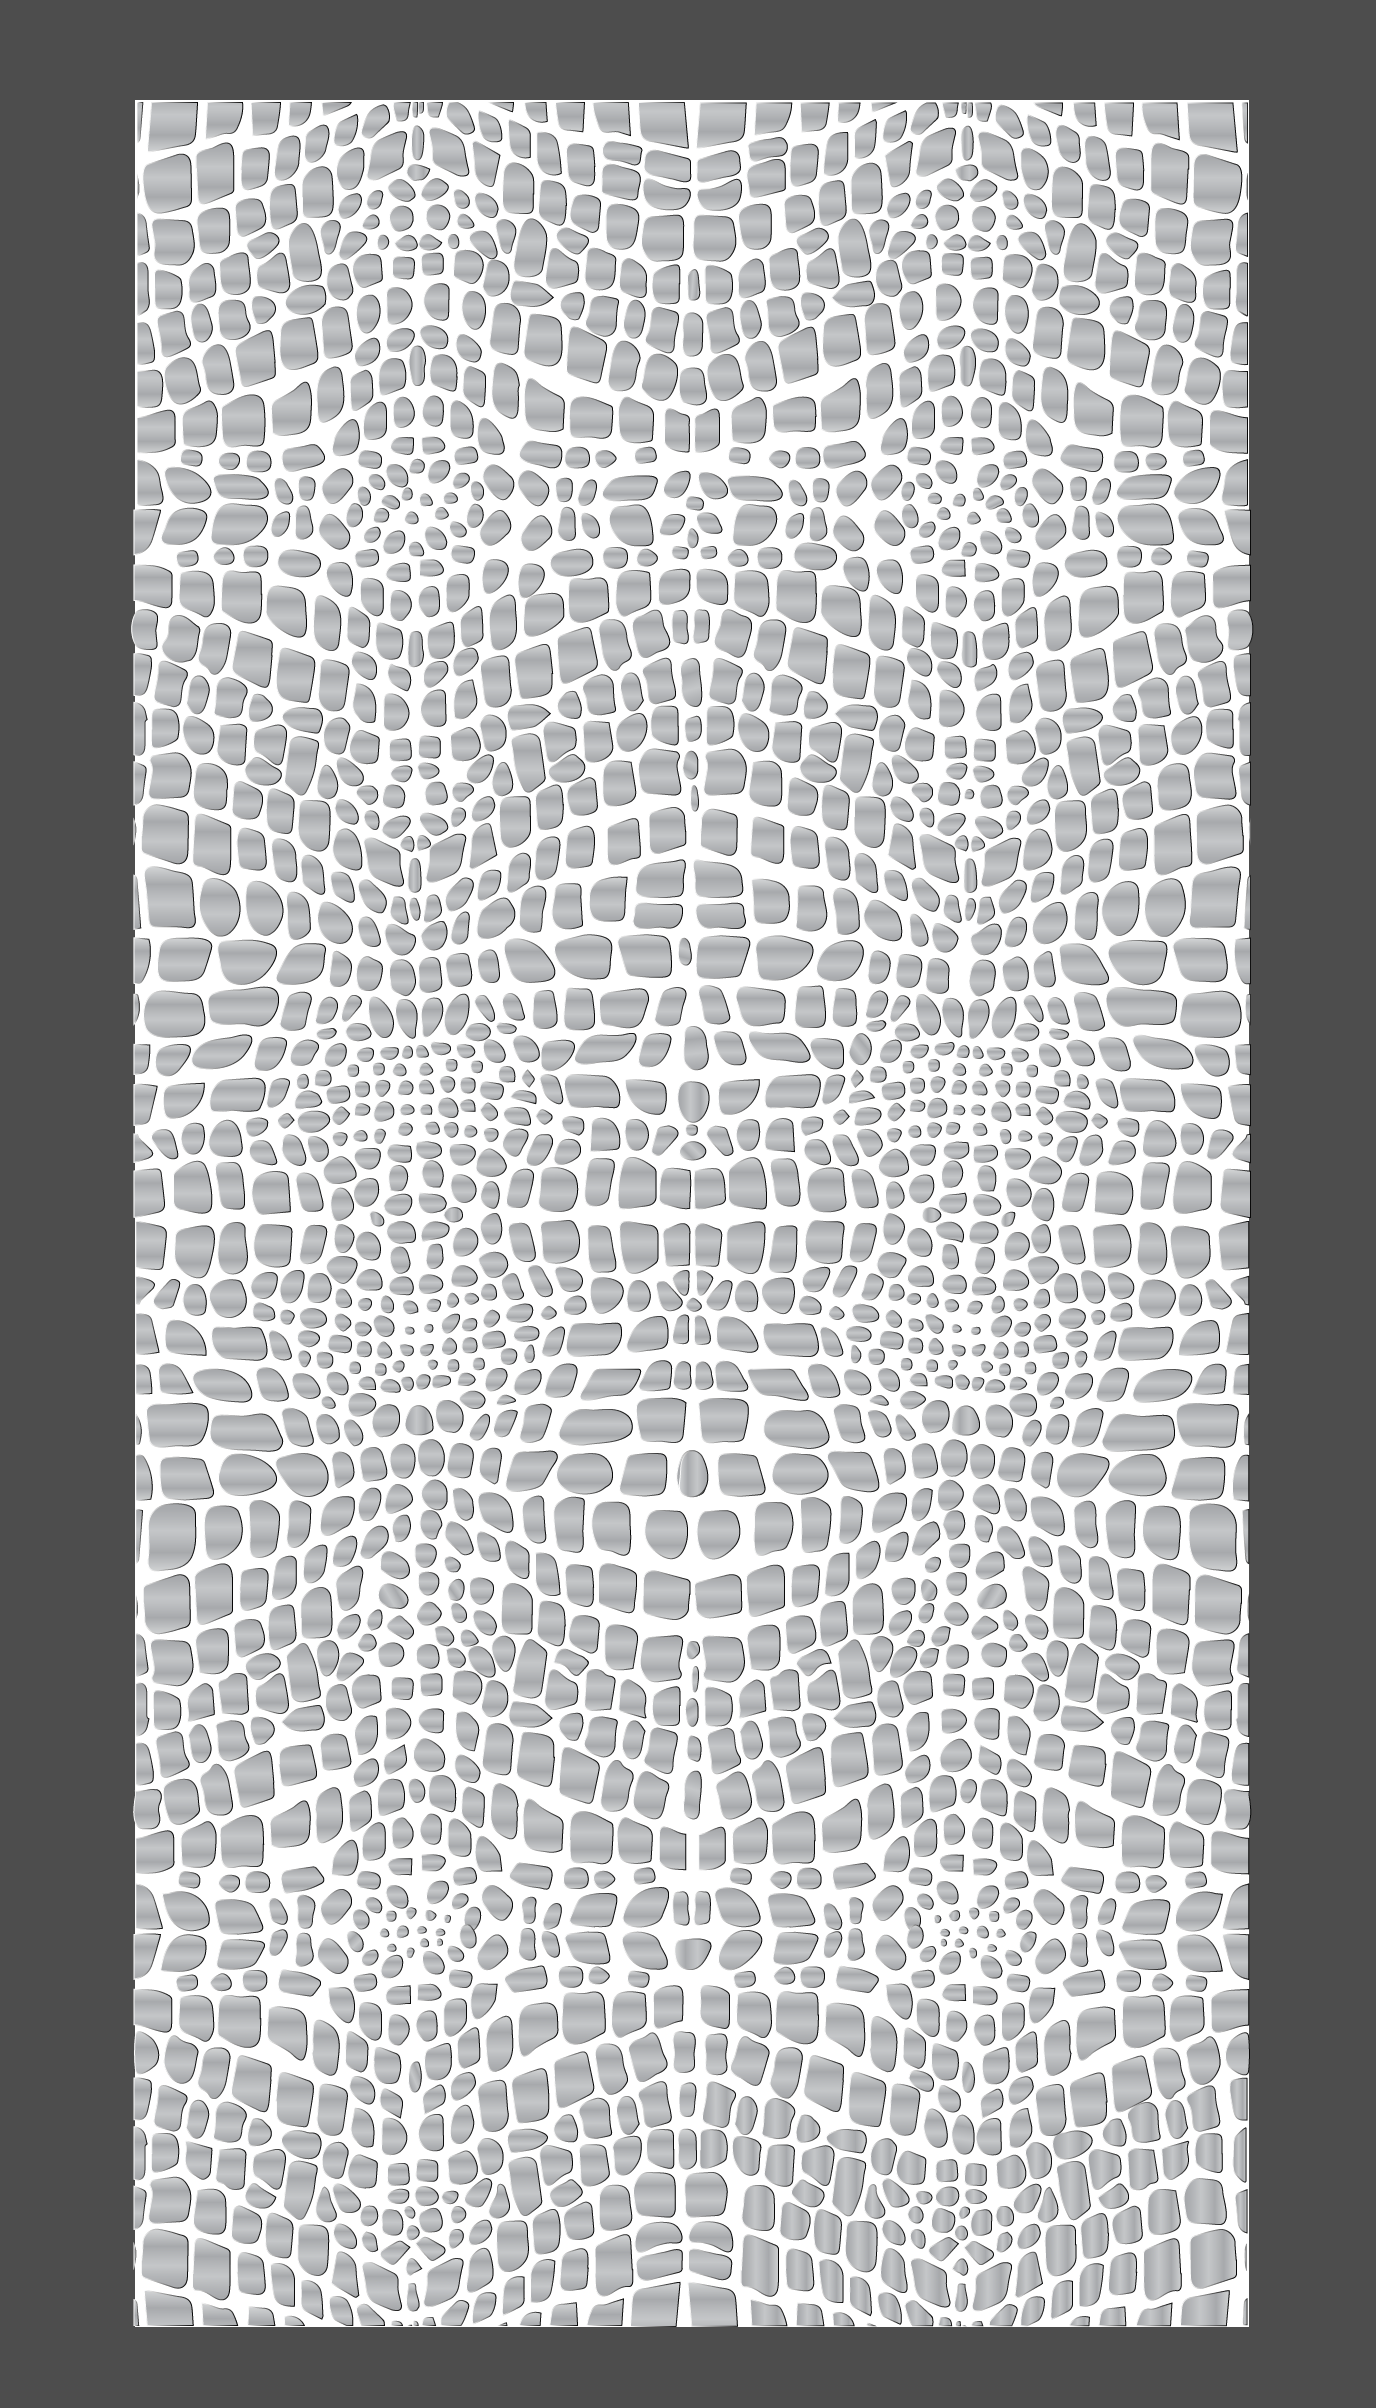 Multiple winners & designs may be rewarded!!! Timeless pattern design for glass panel interior and exterior applications